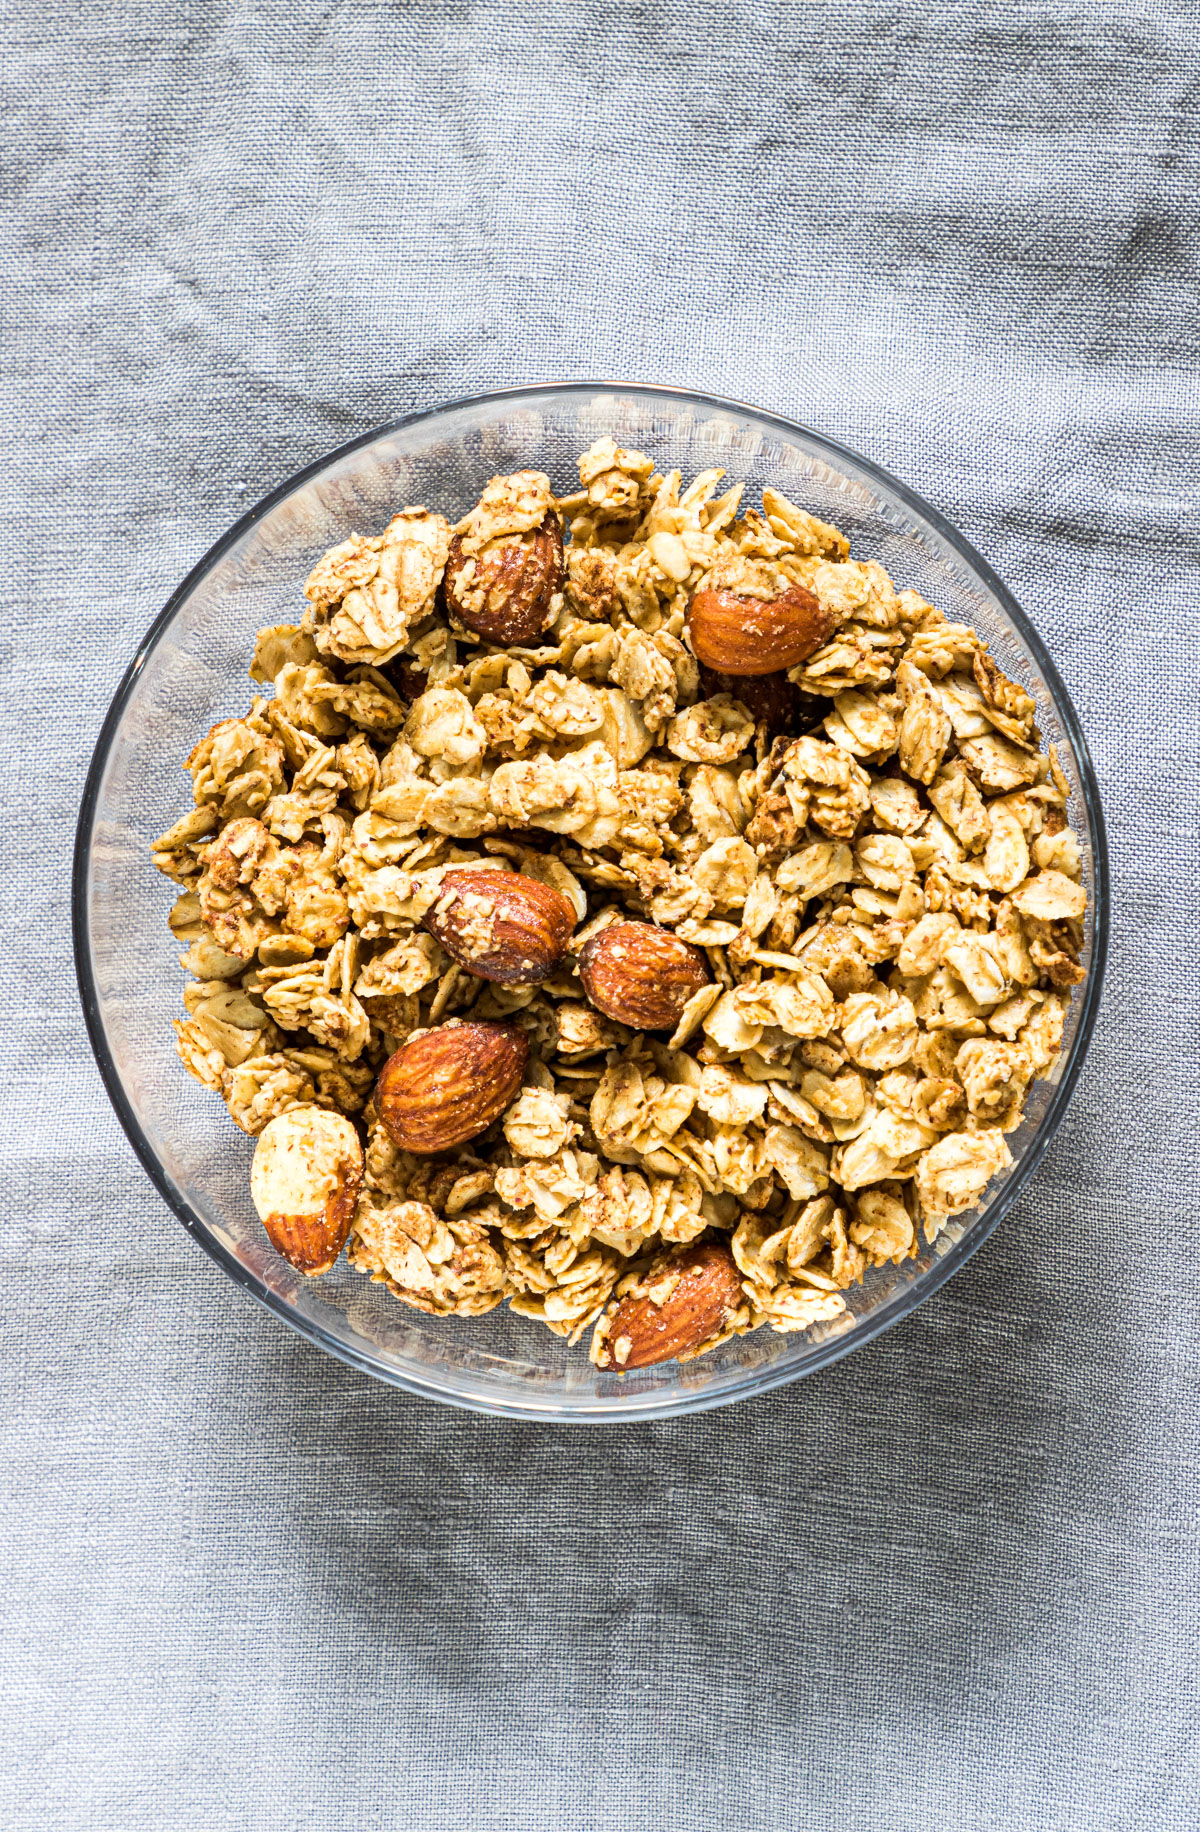 one bowl of almond granola with almonds on a table